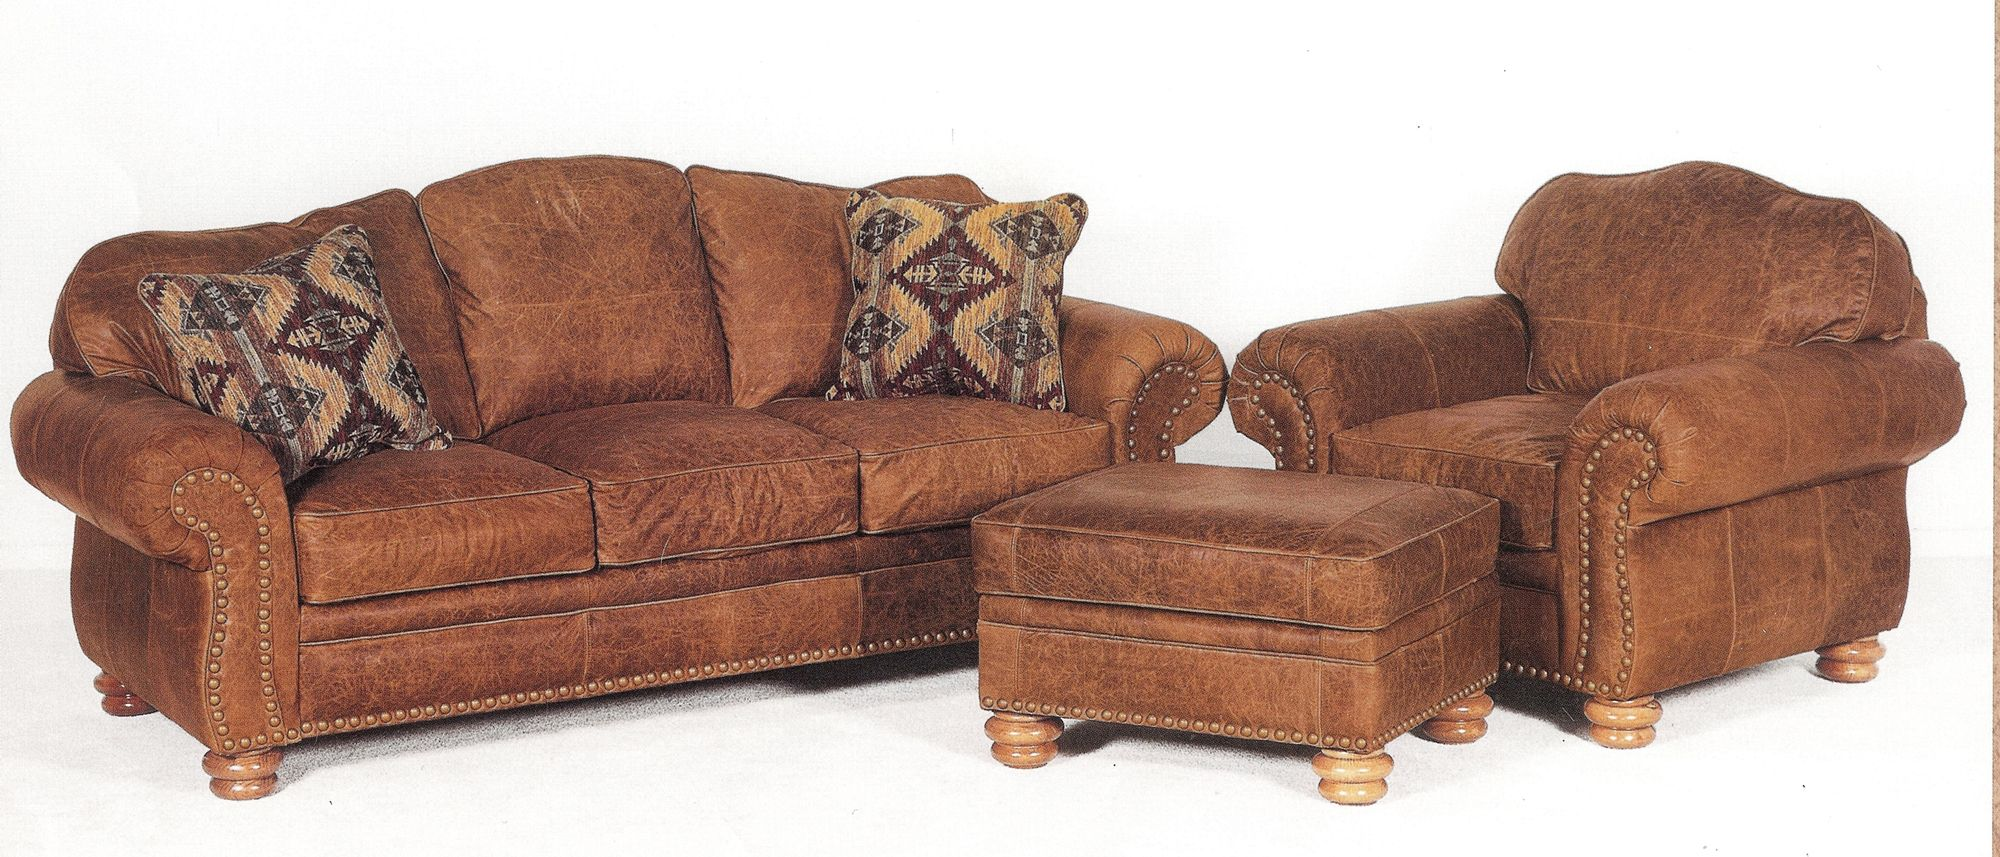 Image detail for This distressed leather sofa, chair and